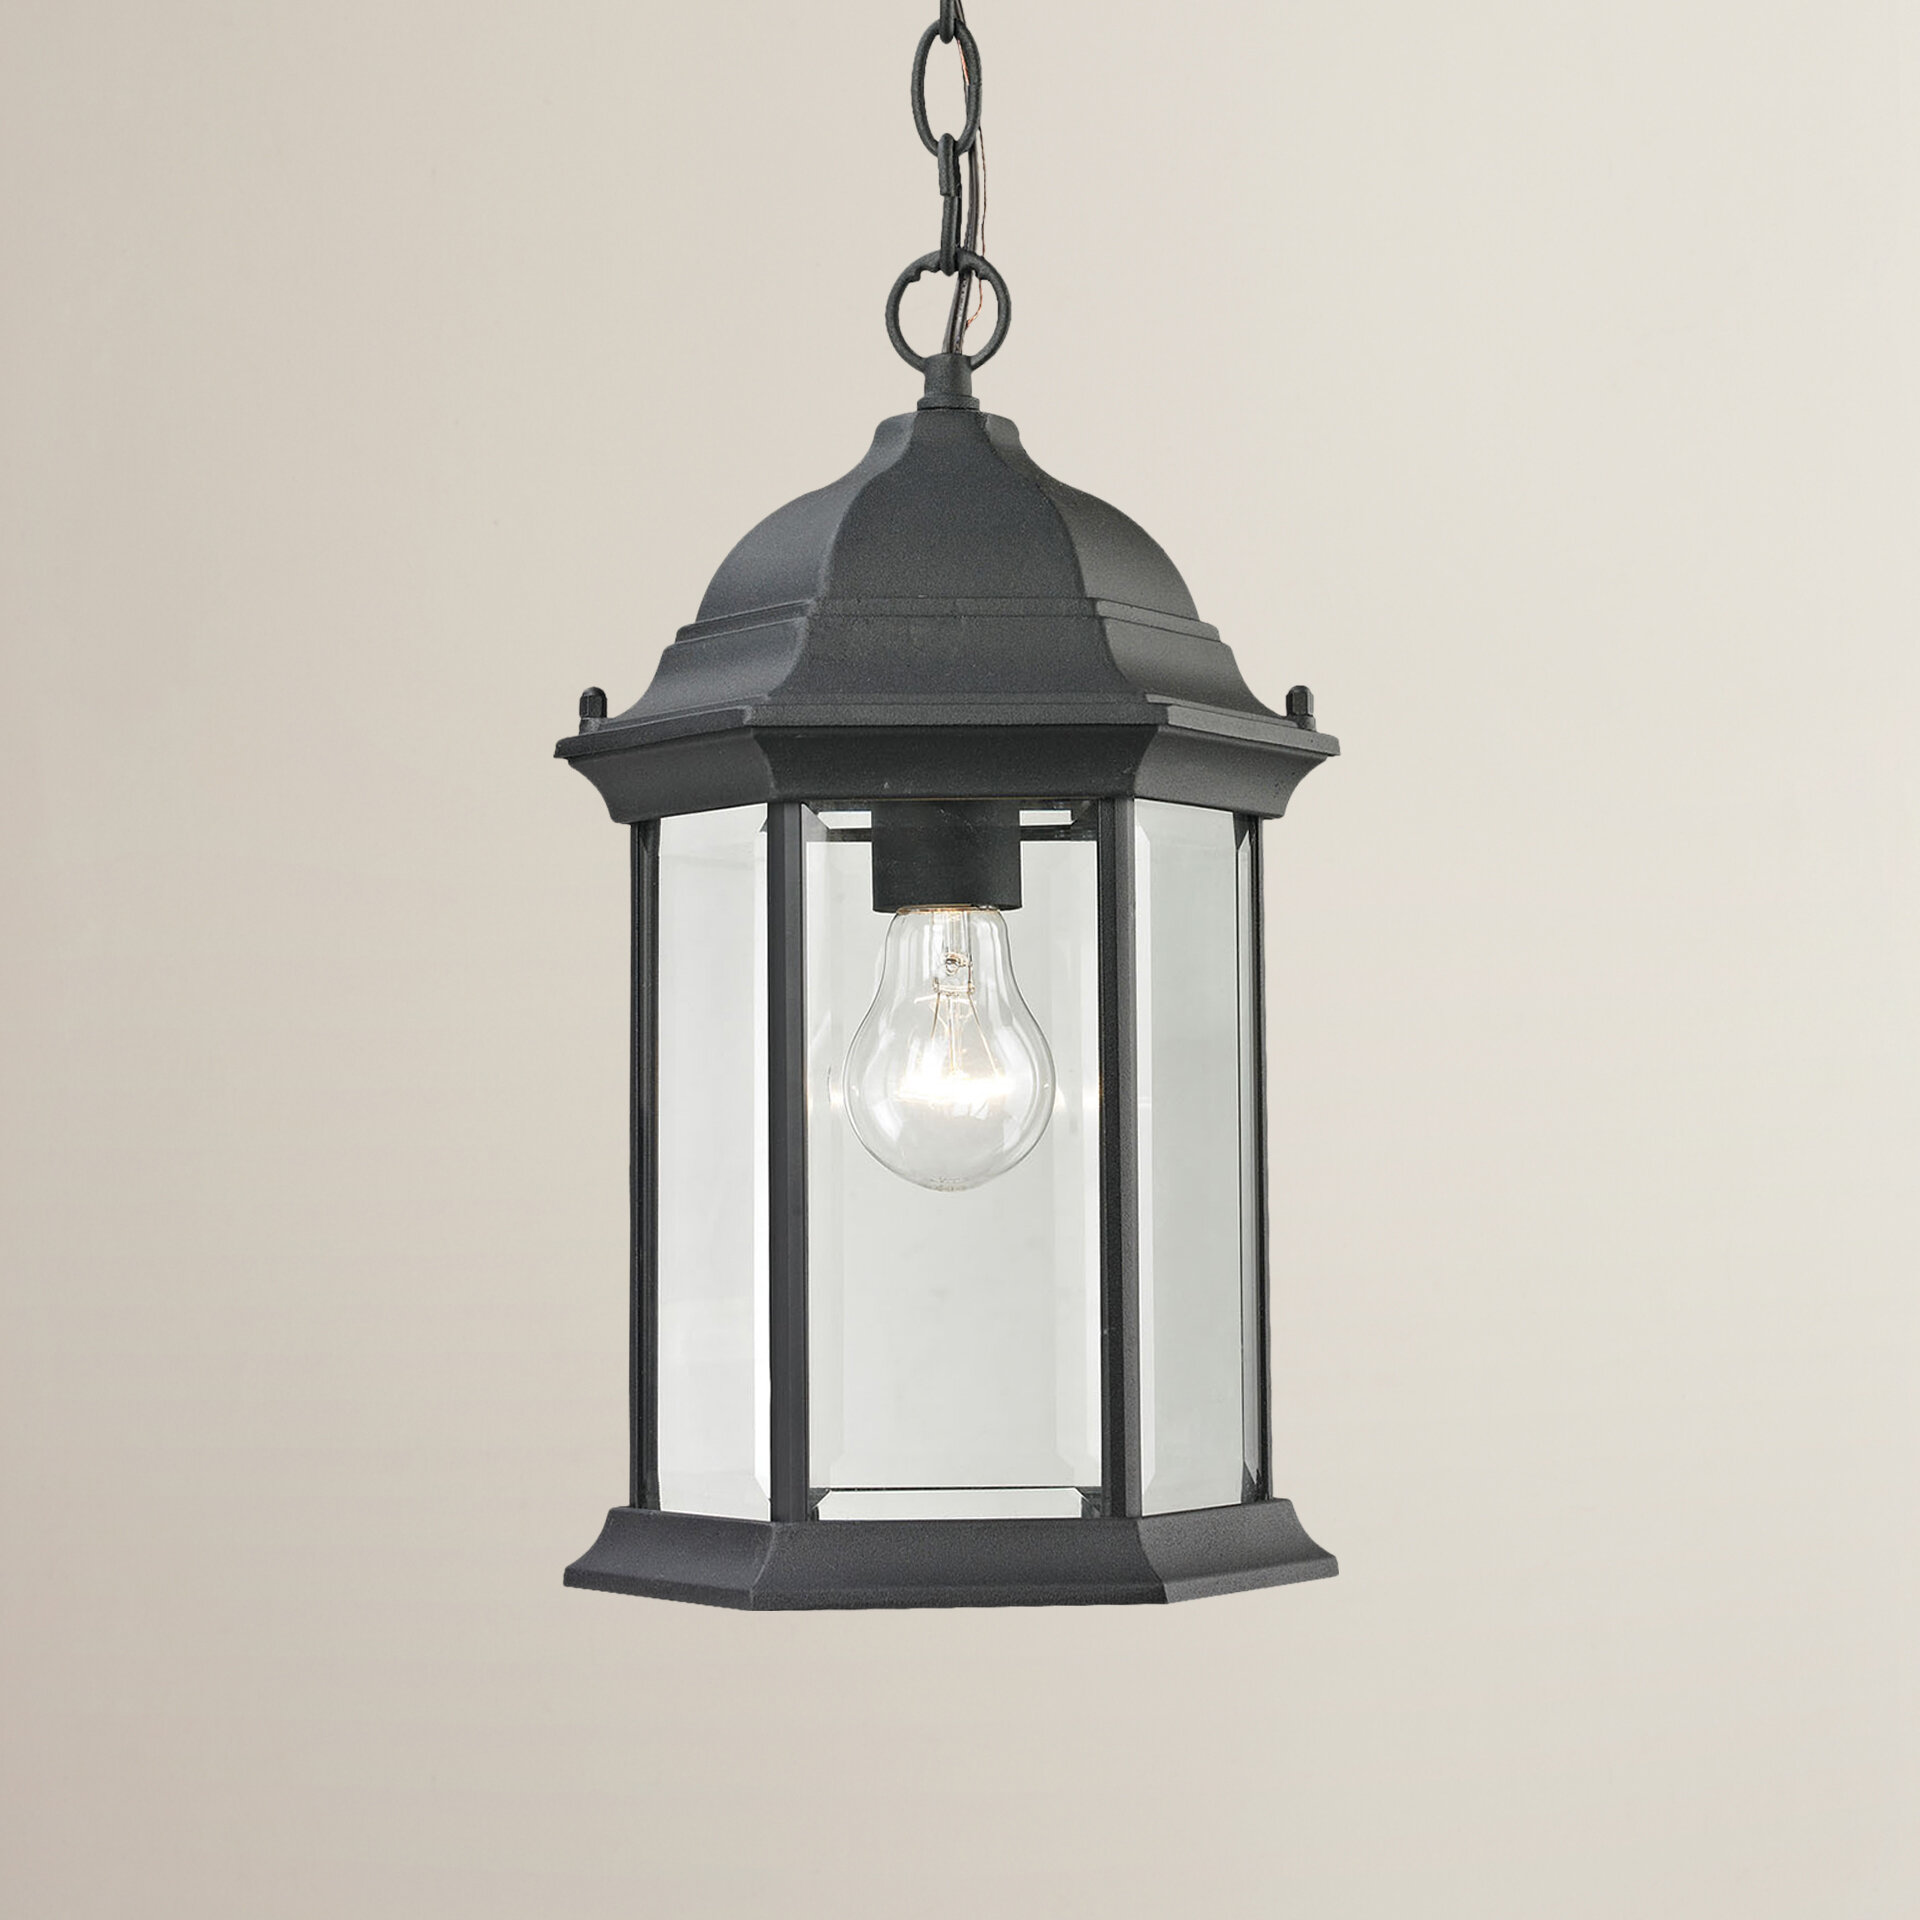 Details about charlton home altagore 1 light outdoor hanging lantern